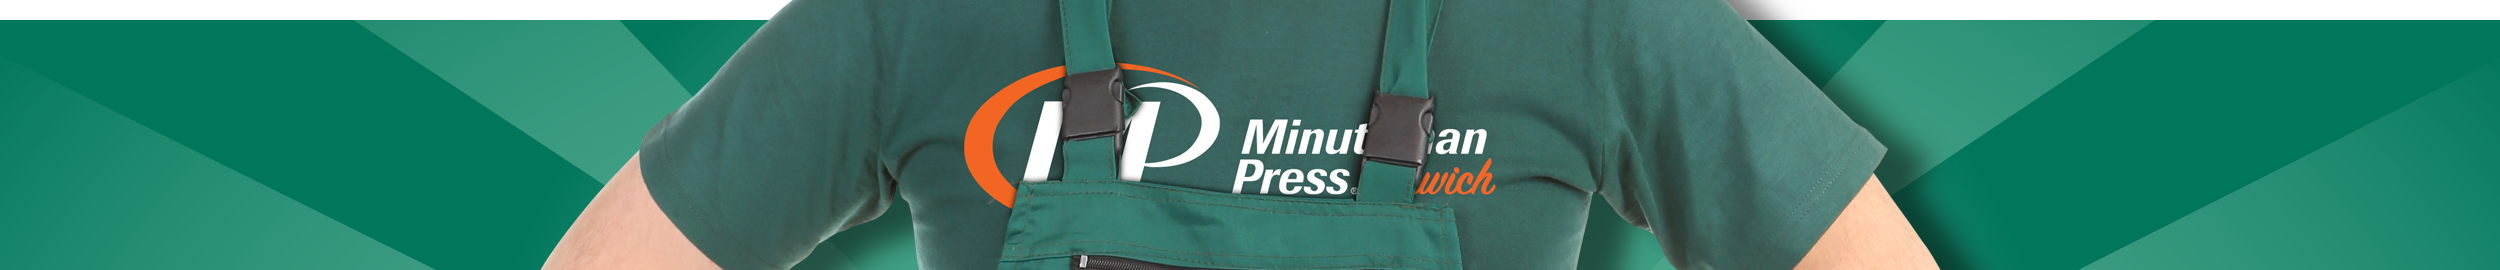 Header Work Wear | Promotional | Minuteman Press Norwich